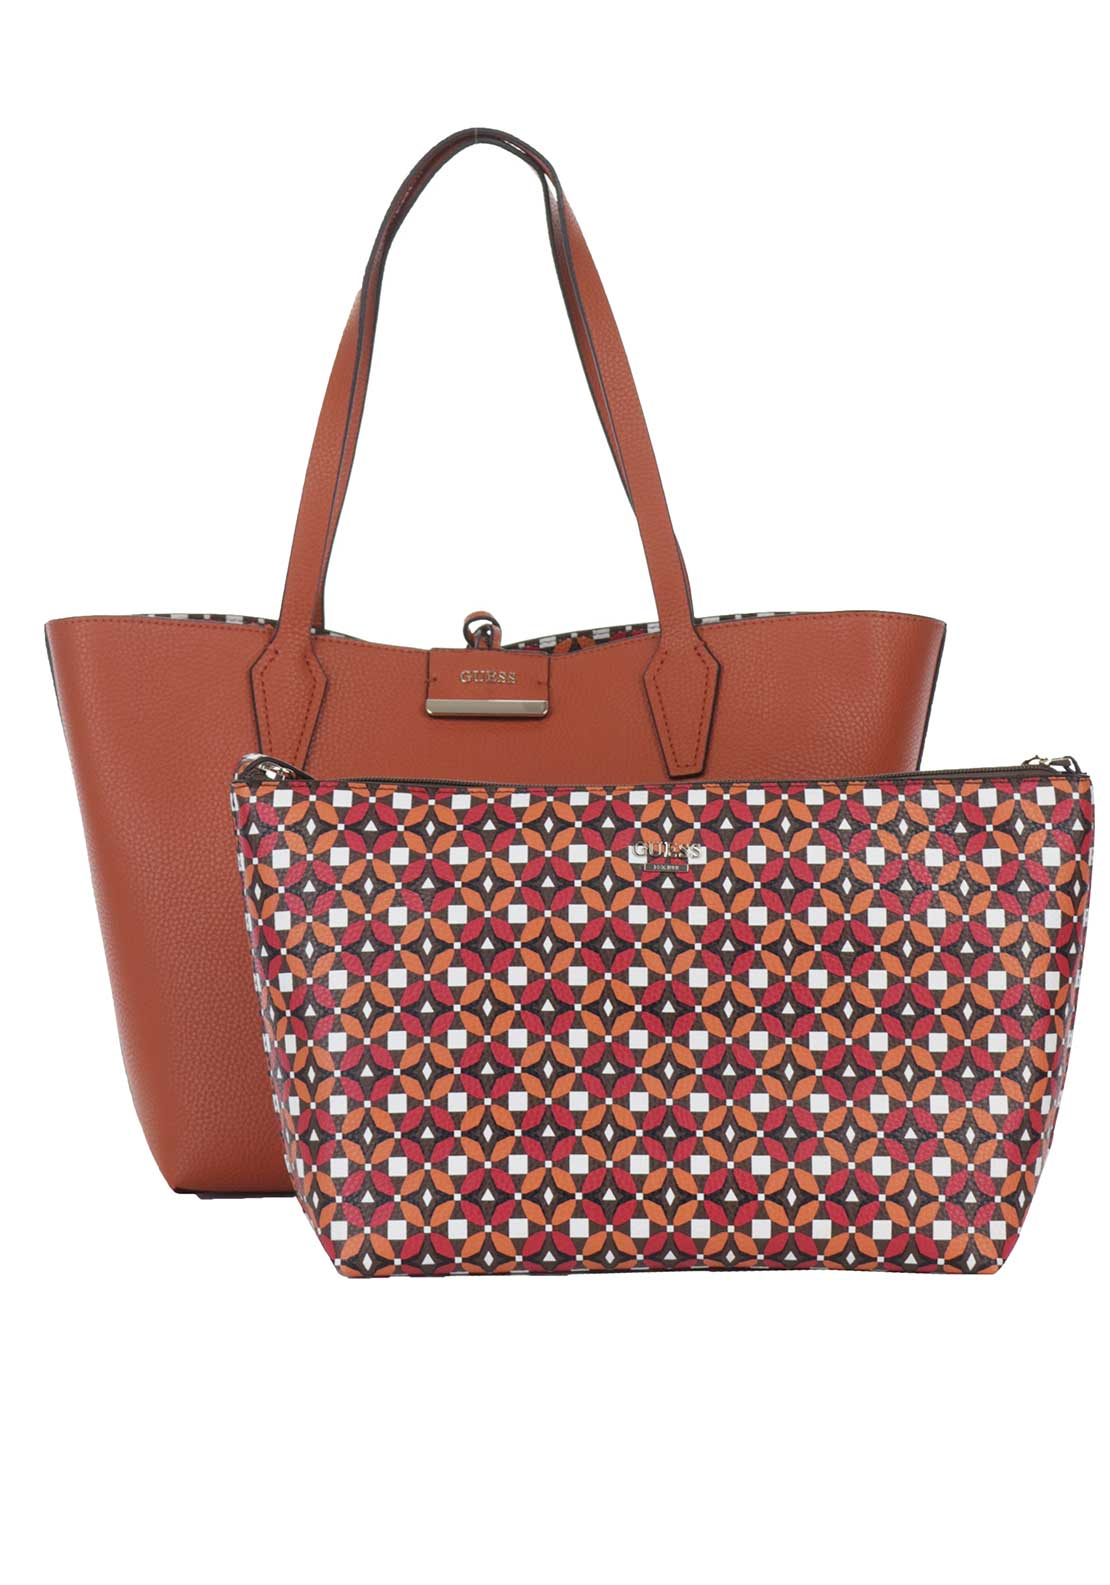 Guess Bobbi Reversible Tote Bag, Spice Multi